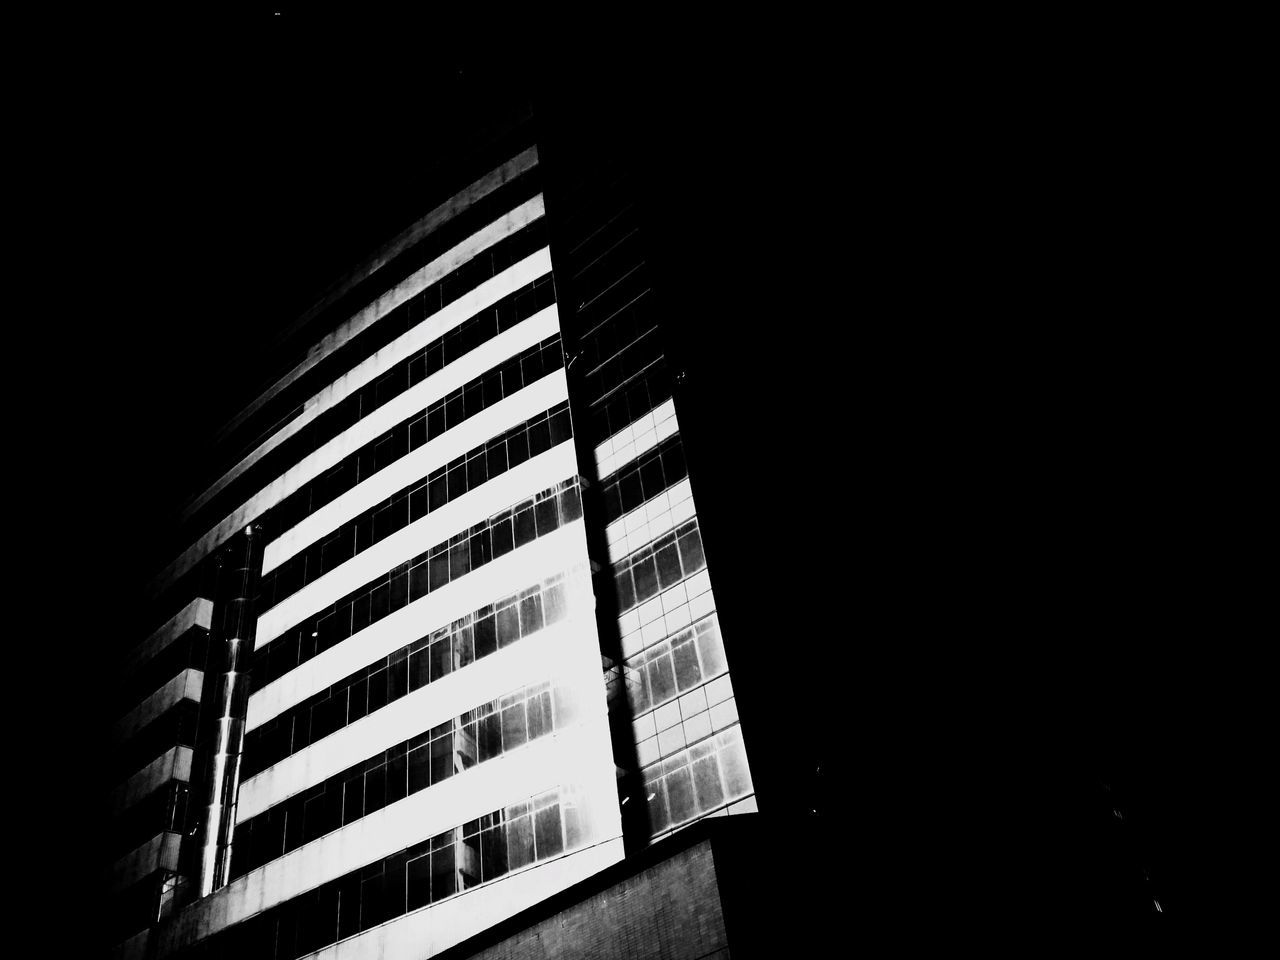 architecture, window, low angle view, building exterior, built structure, modern, illuminated, no people, night, indoors, skyscraper, apartment, city, black background, close-up